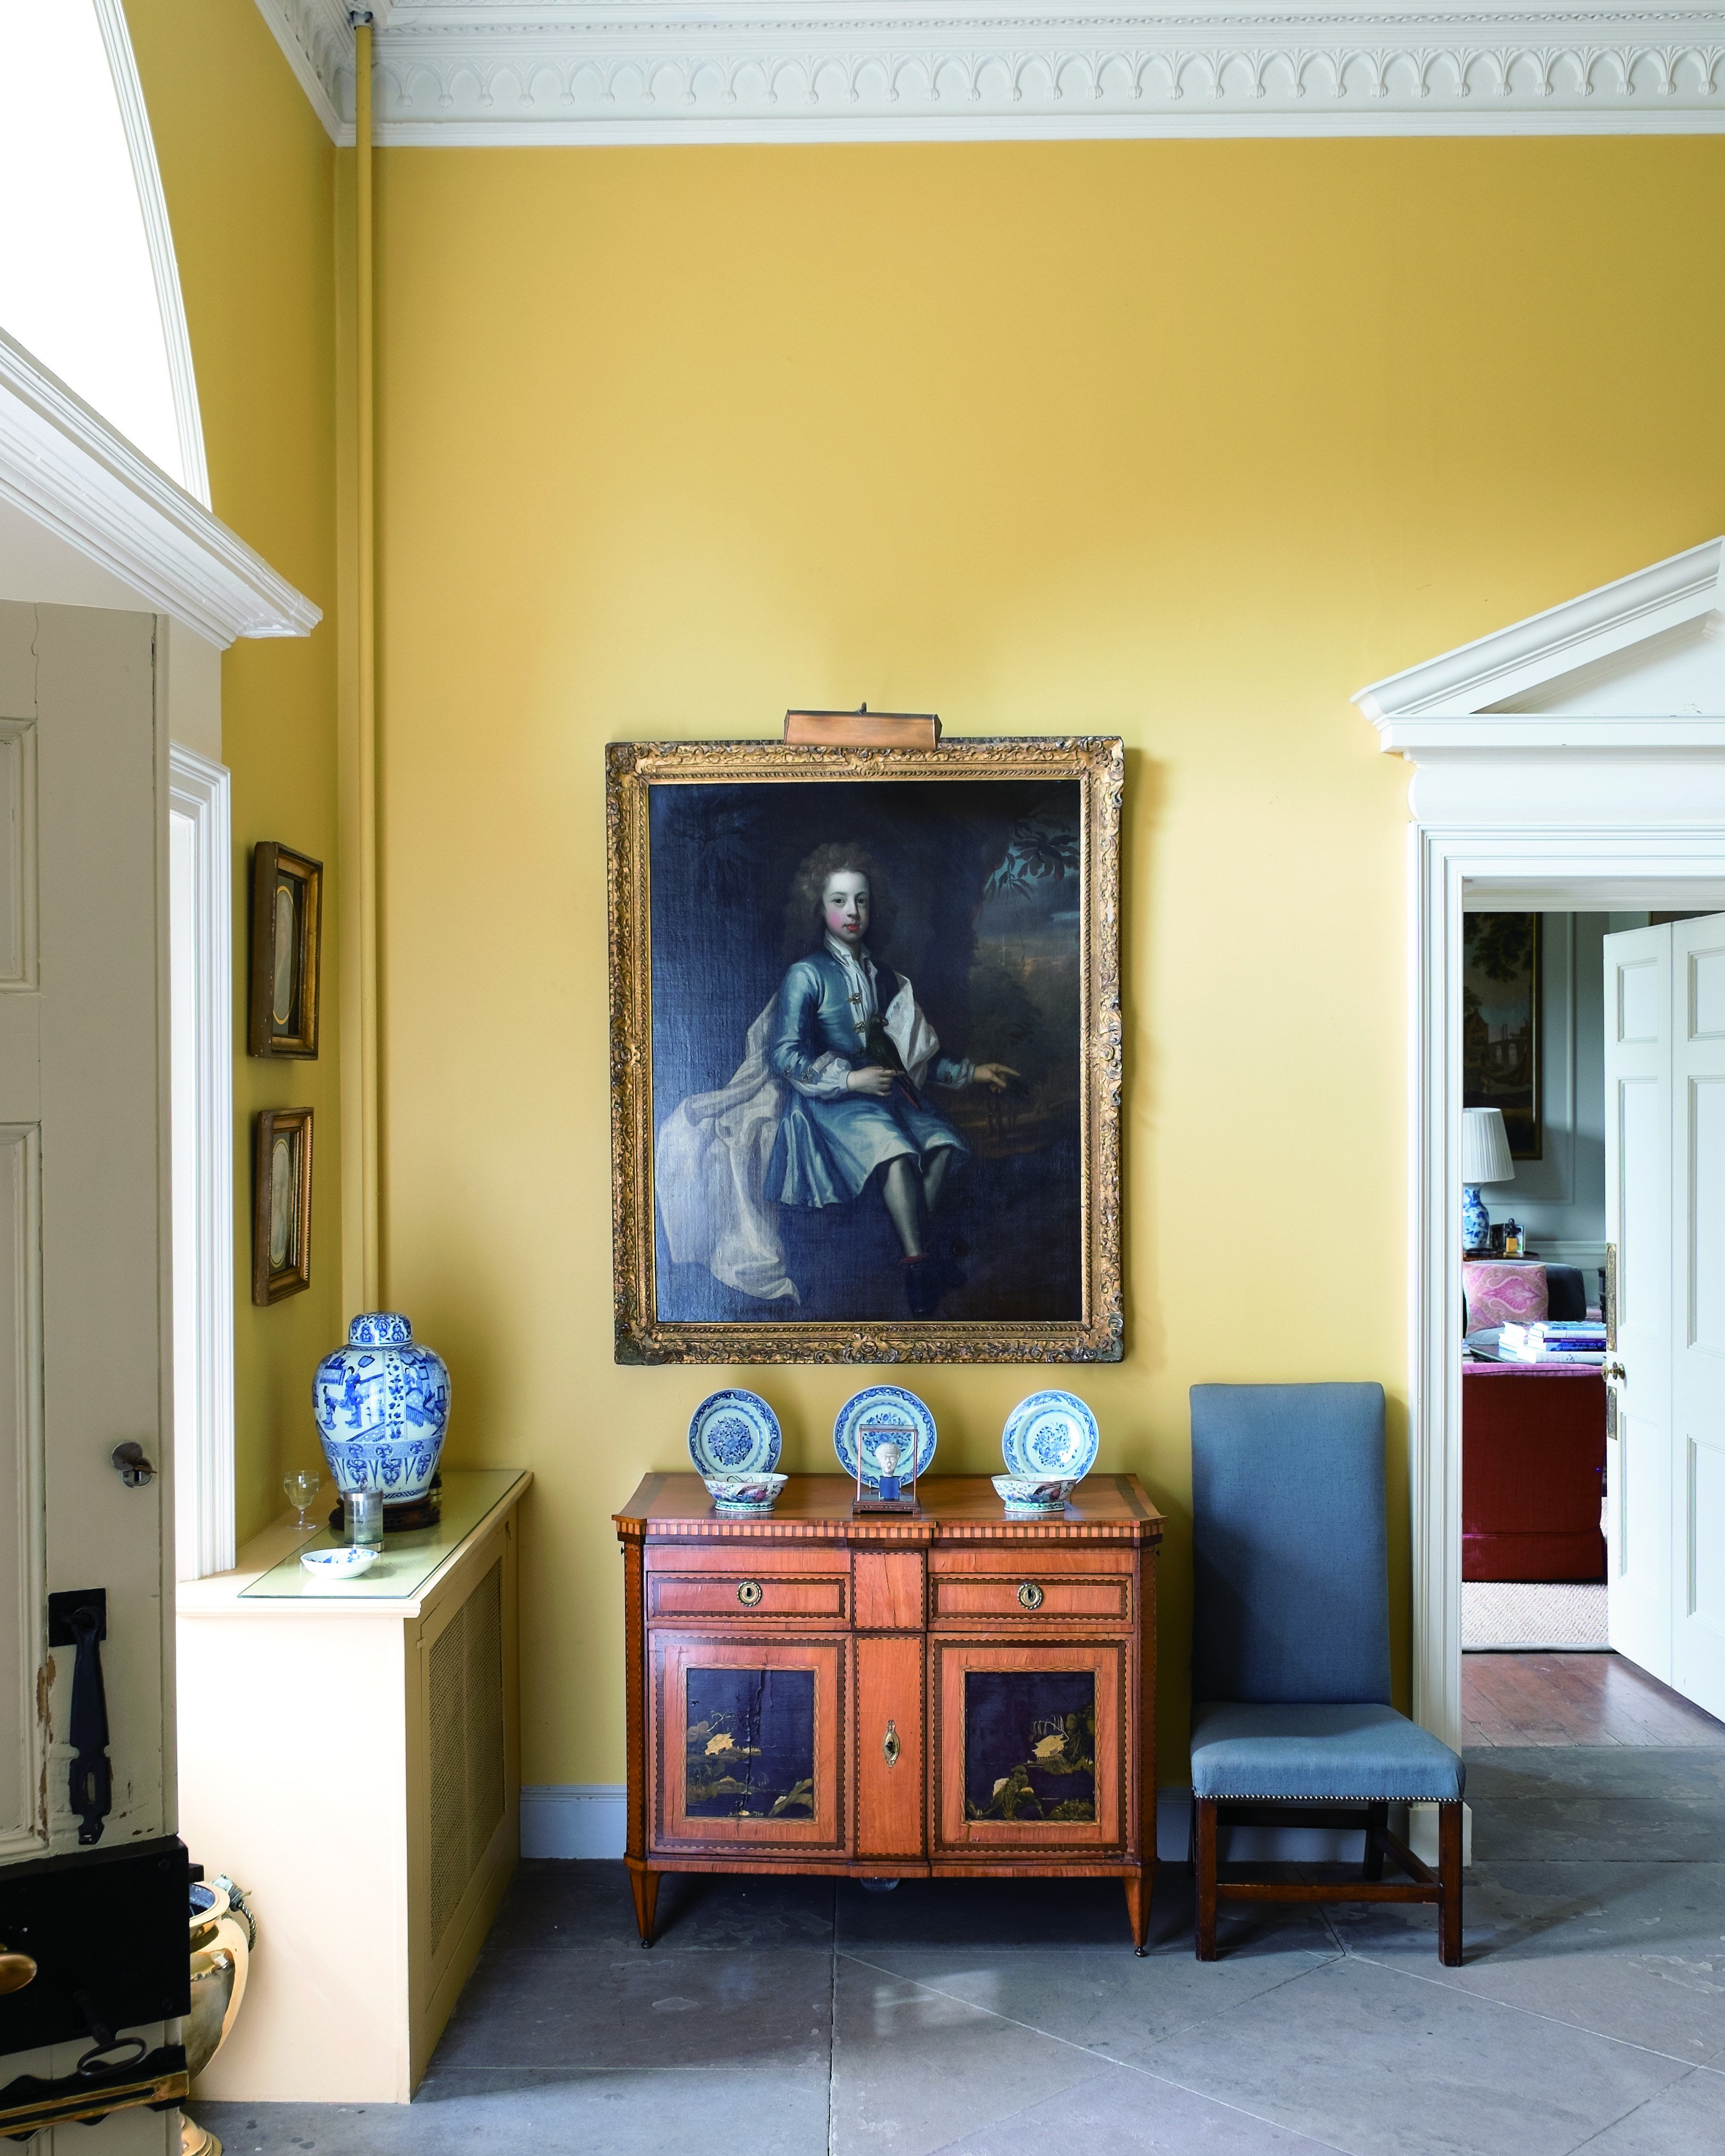 Yellow Paint For Living Room Walls: 4 Painting Tips From Farrow & Ball's Color Experts